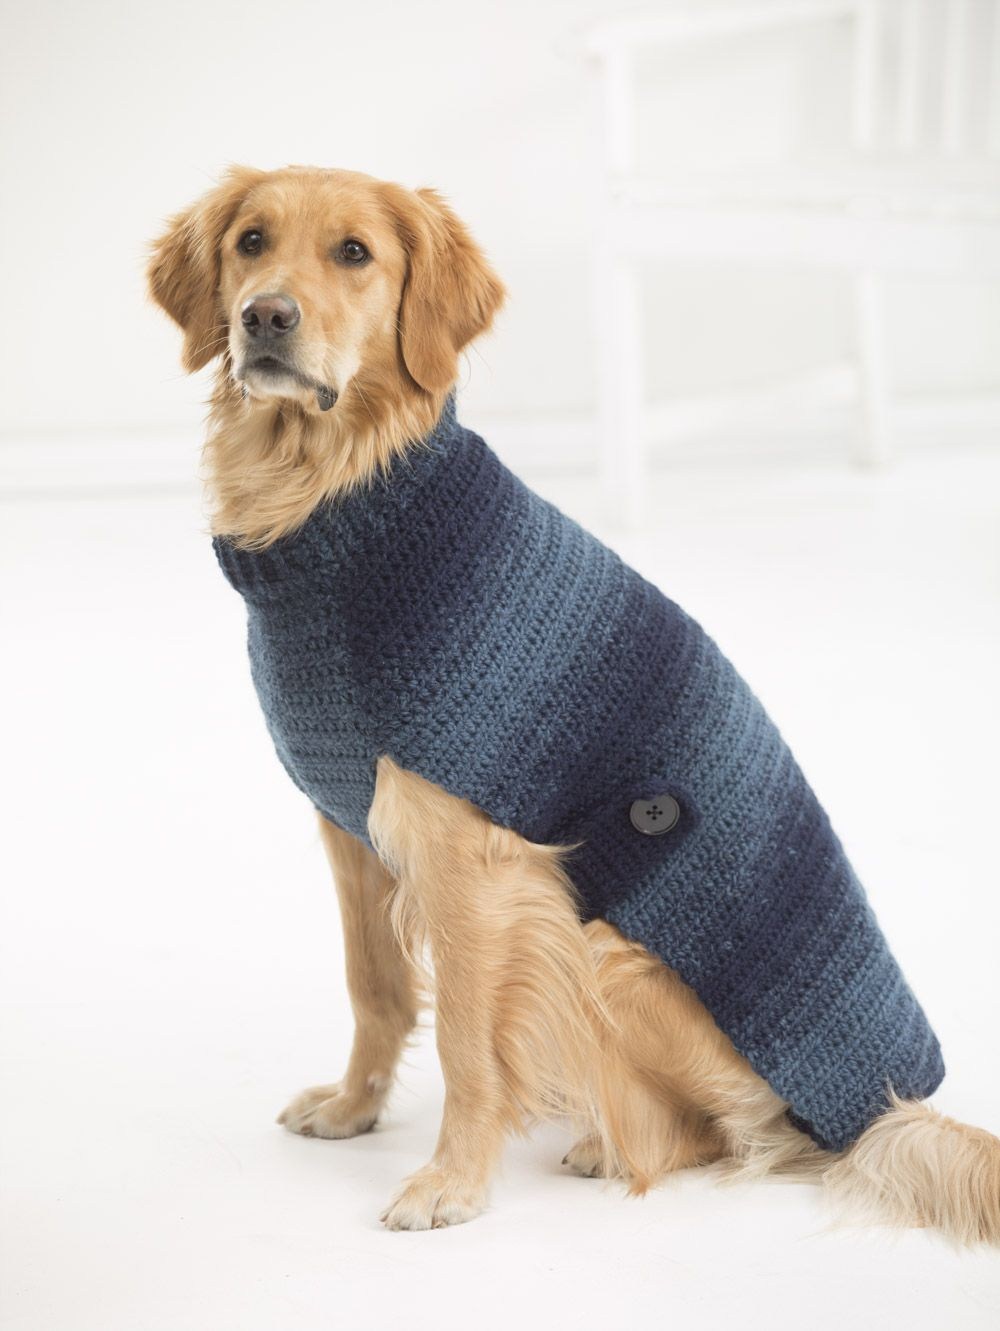 Dog Sweater Knitting Patterns Free Knitting Patterns For Dog Sweater For Basset